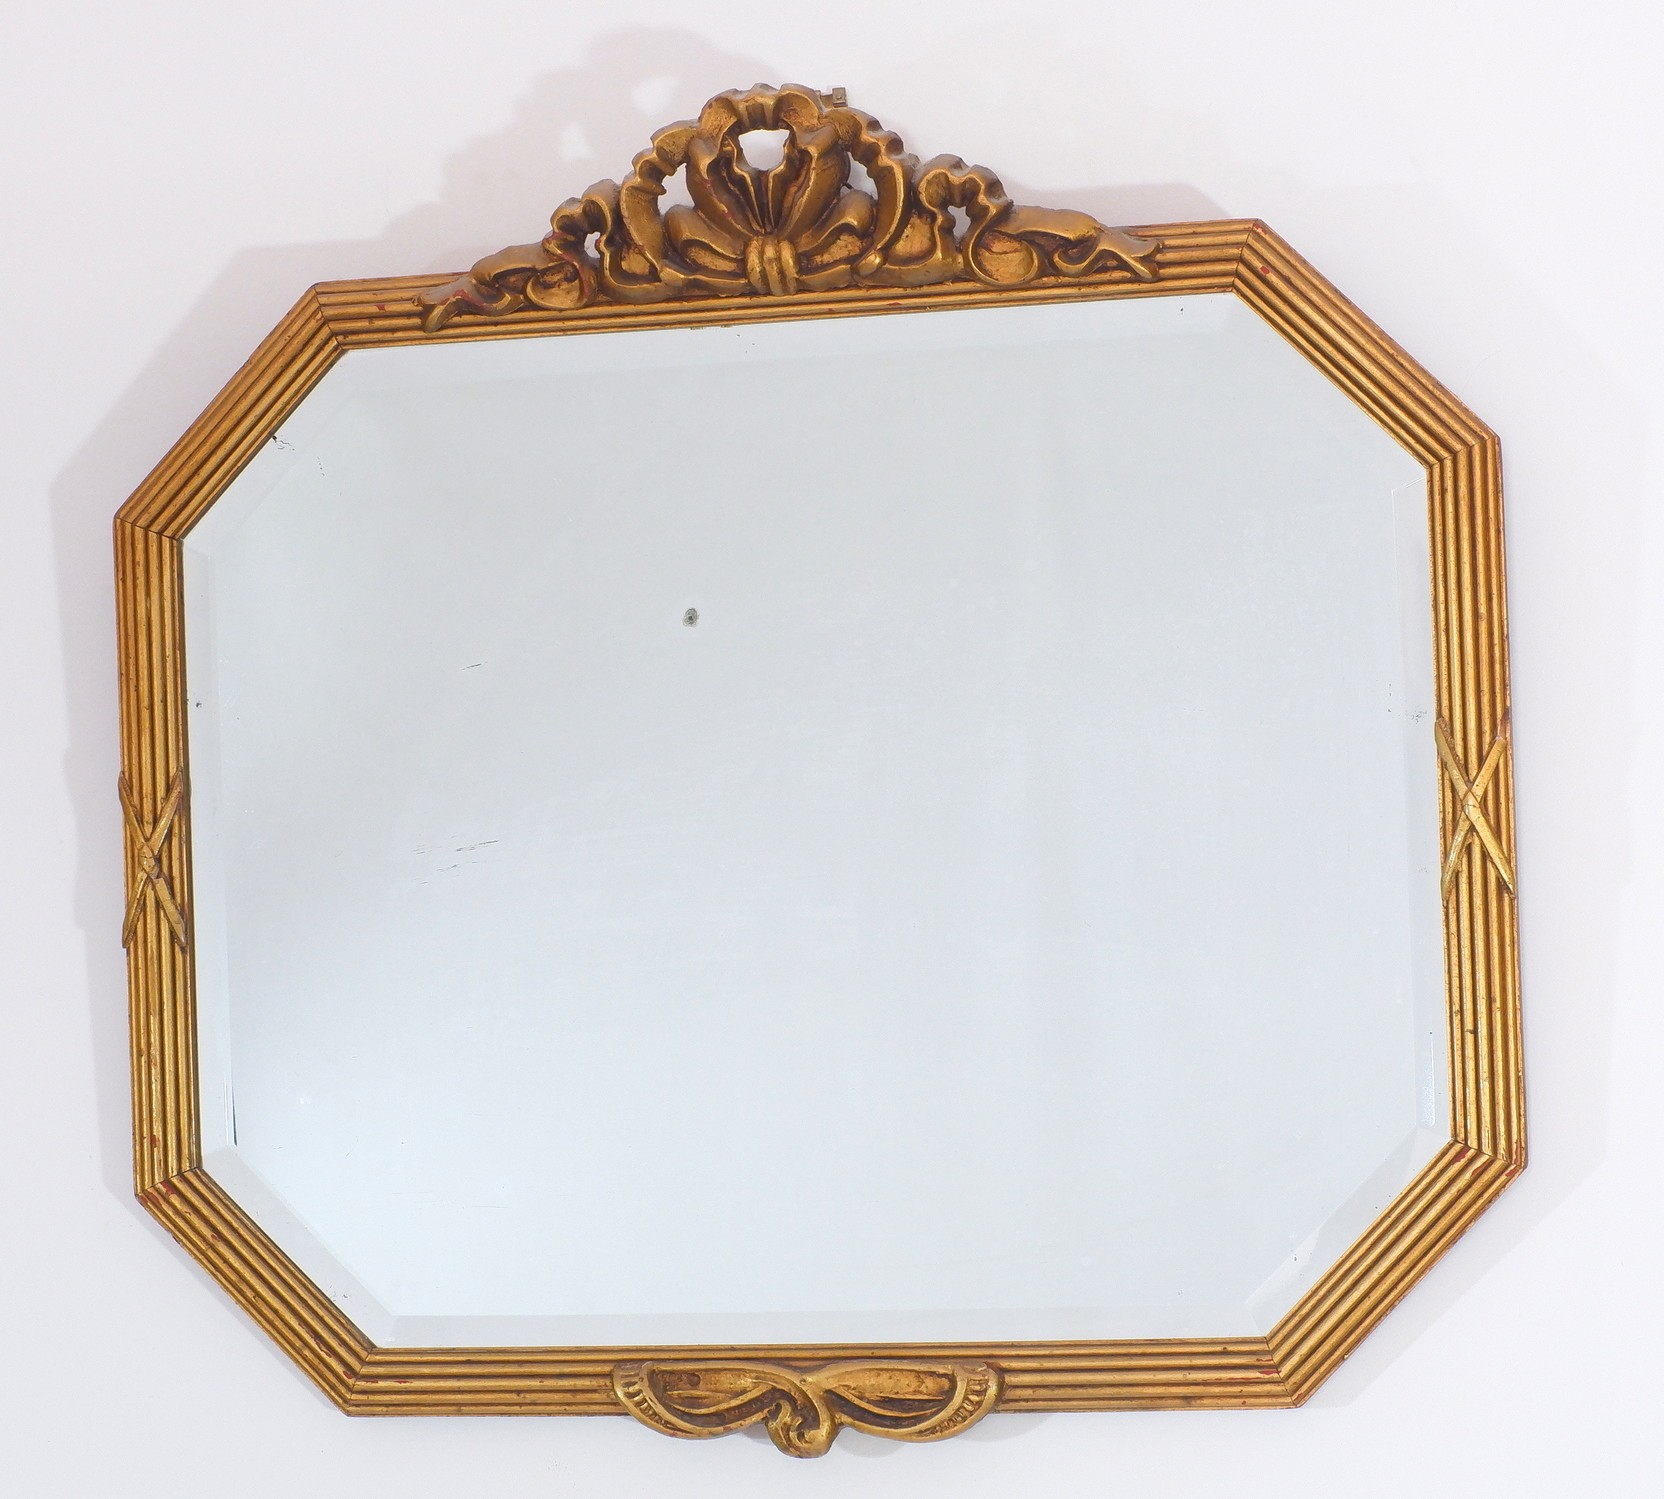 'Vintage Giltwood and Moulded Gesso Bevelled Mirror'